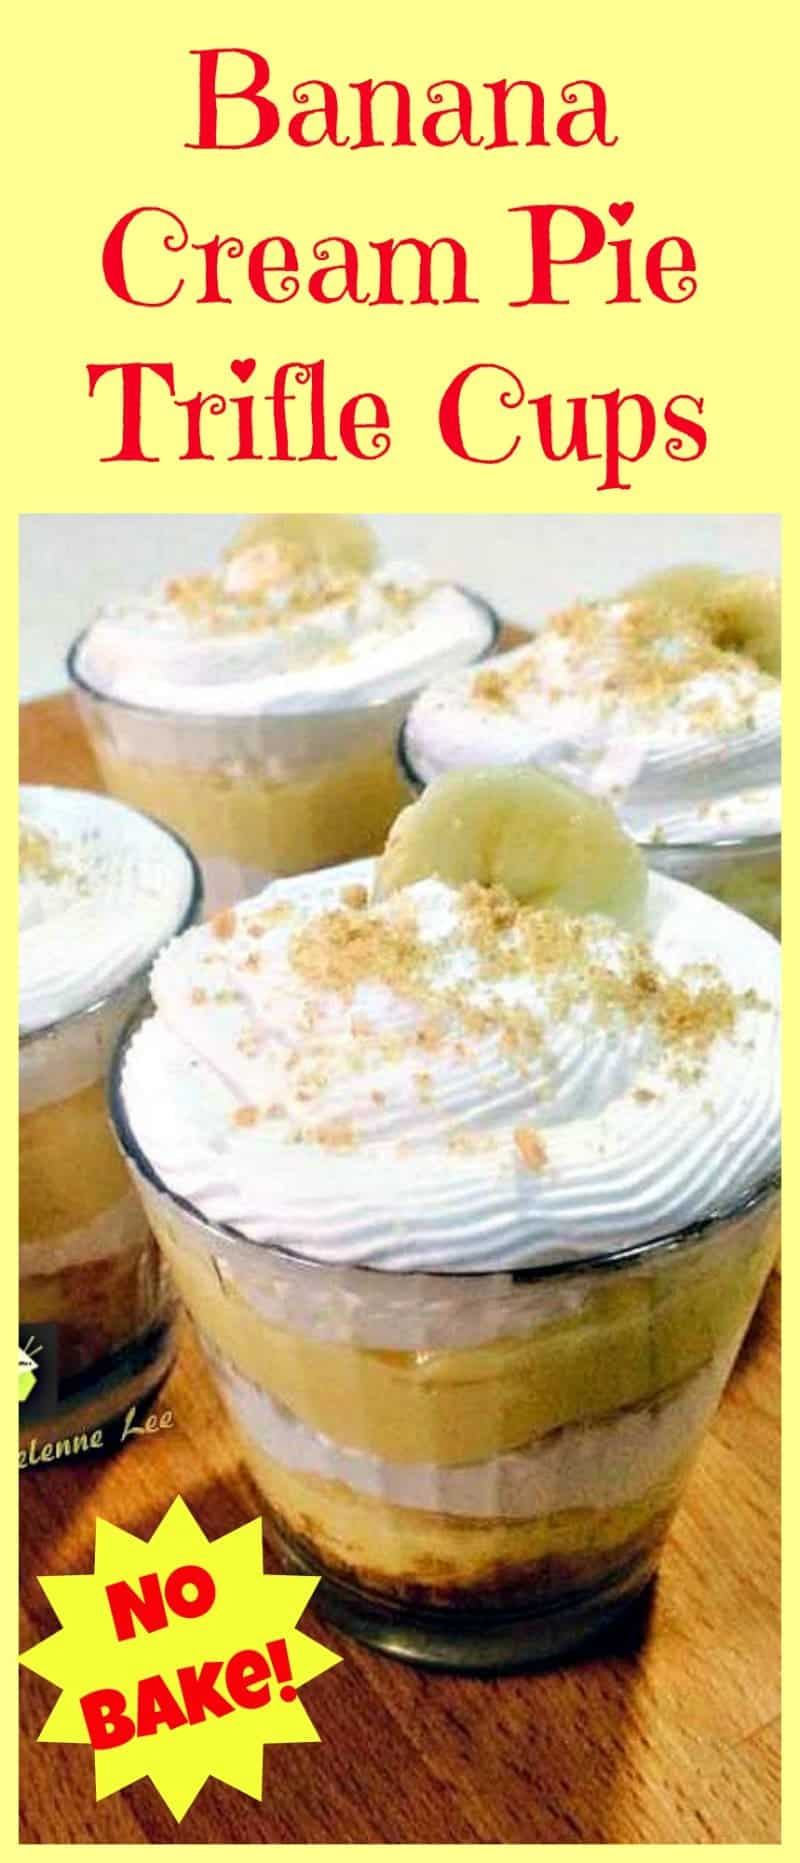 Banana Cream Pie Trifle Cups. A delicious no bake dessert and easy too!